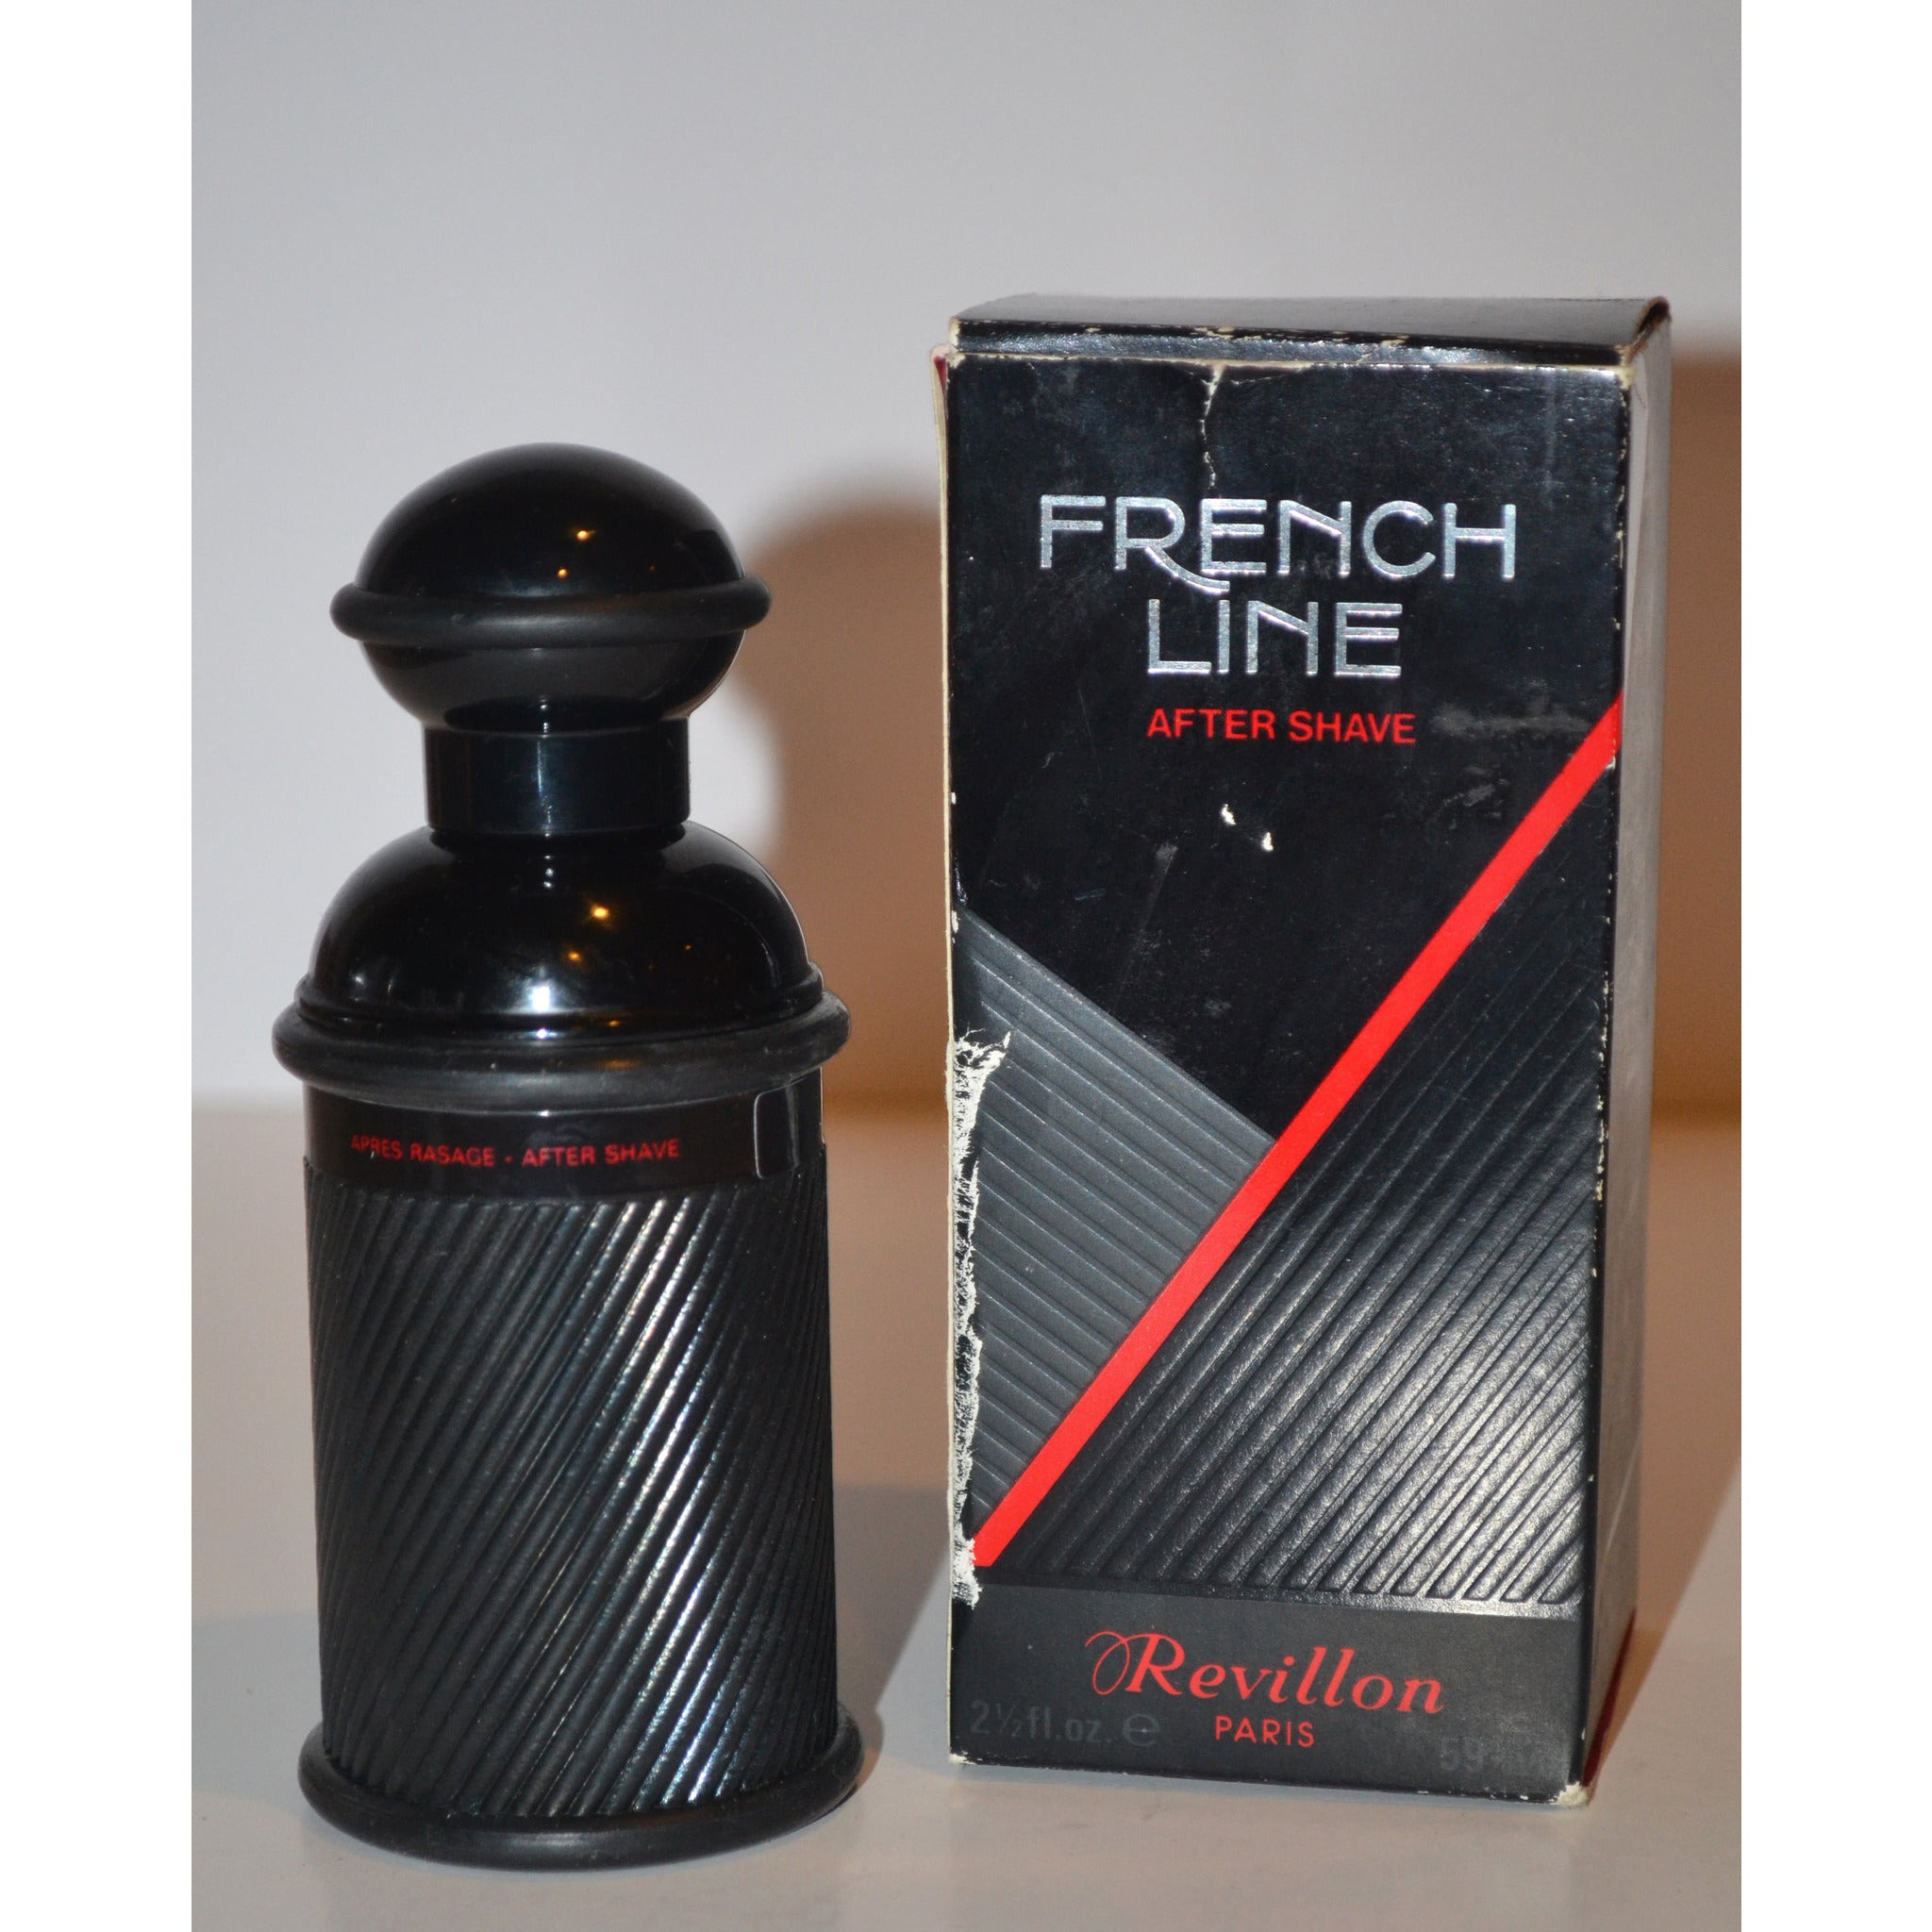 Vintage French Line After Shave By Revillon